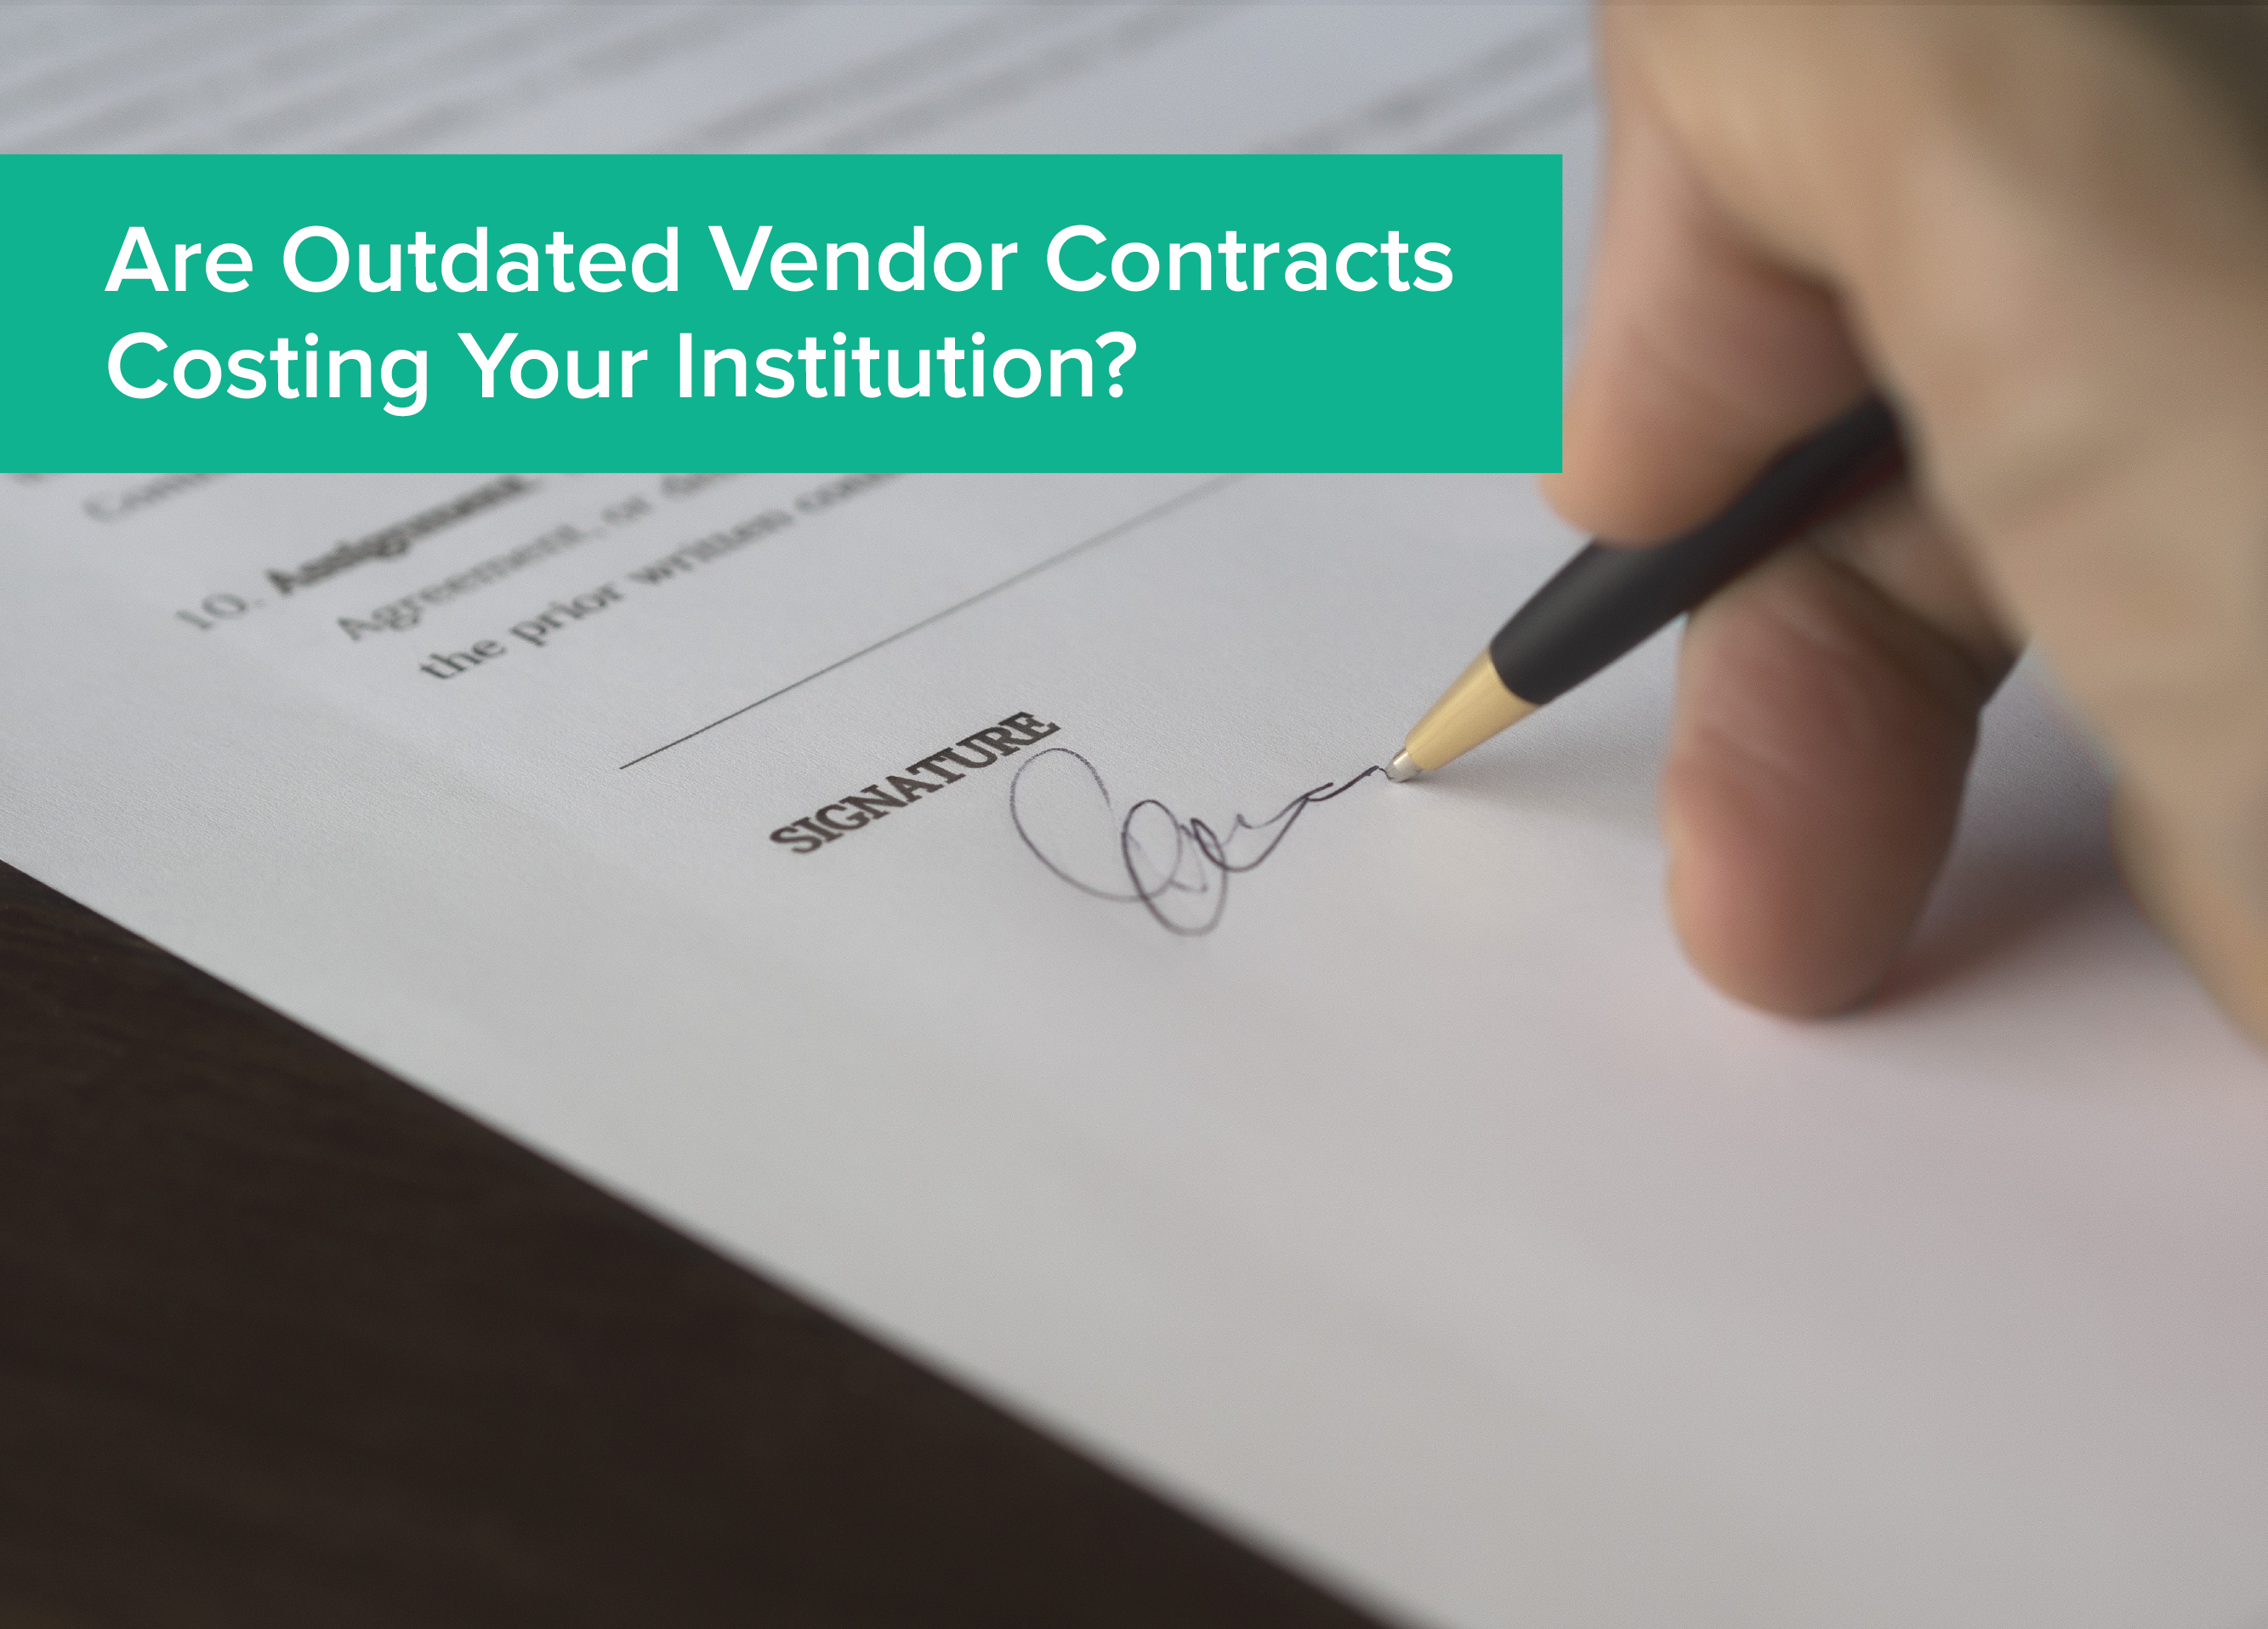 Are Outdated Vendor Contracts Costing Your Institution?